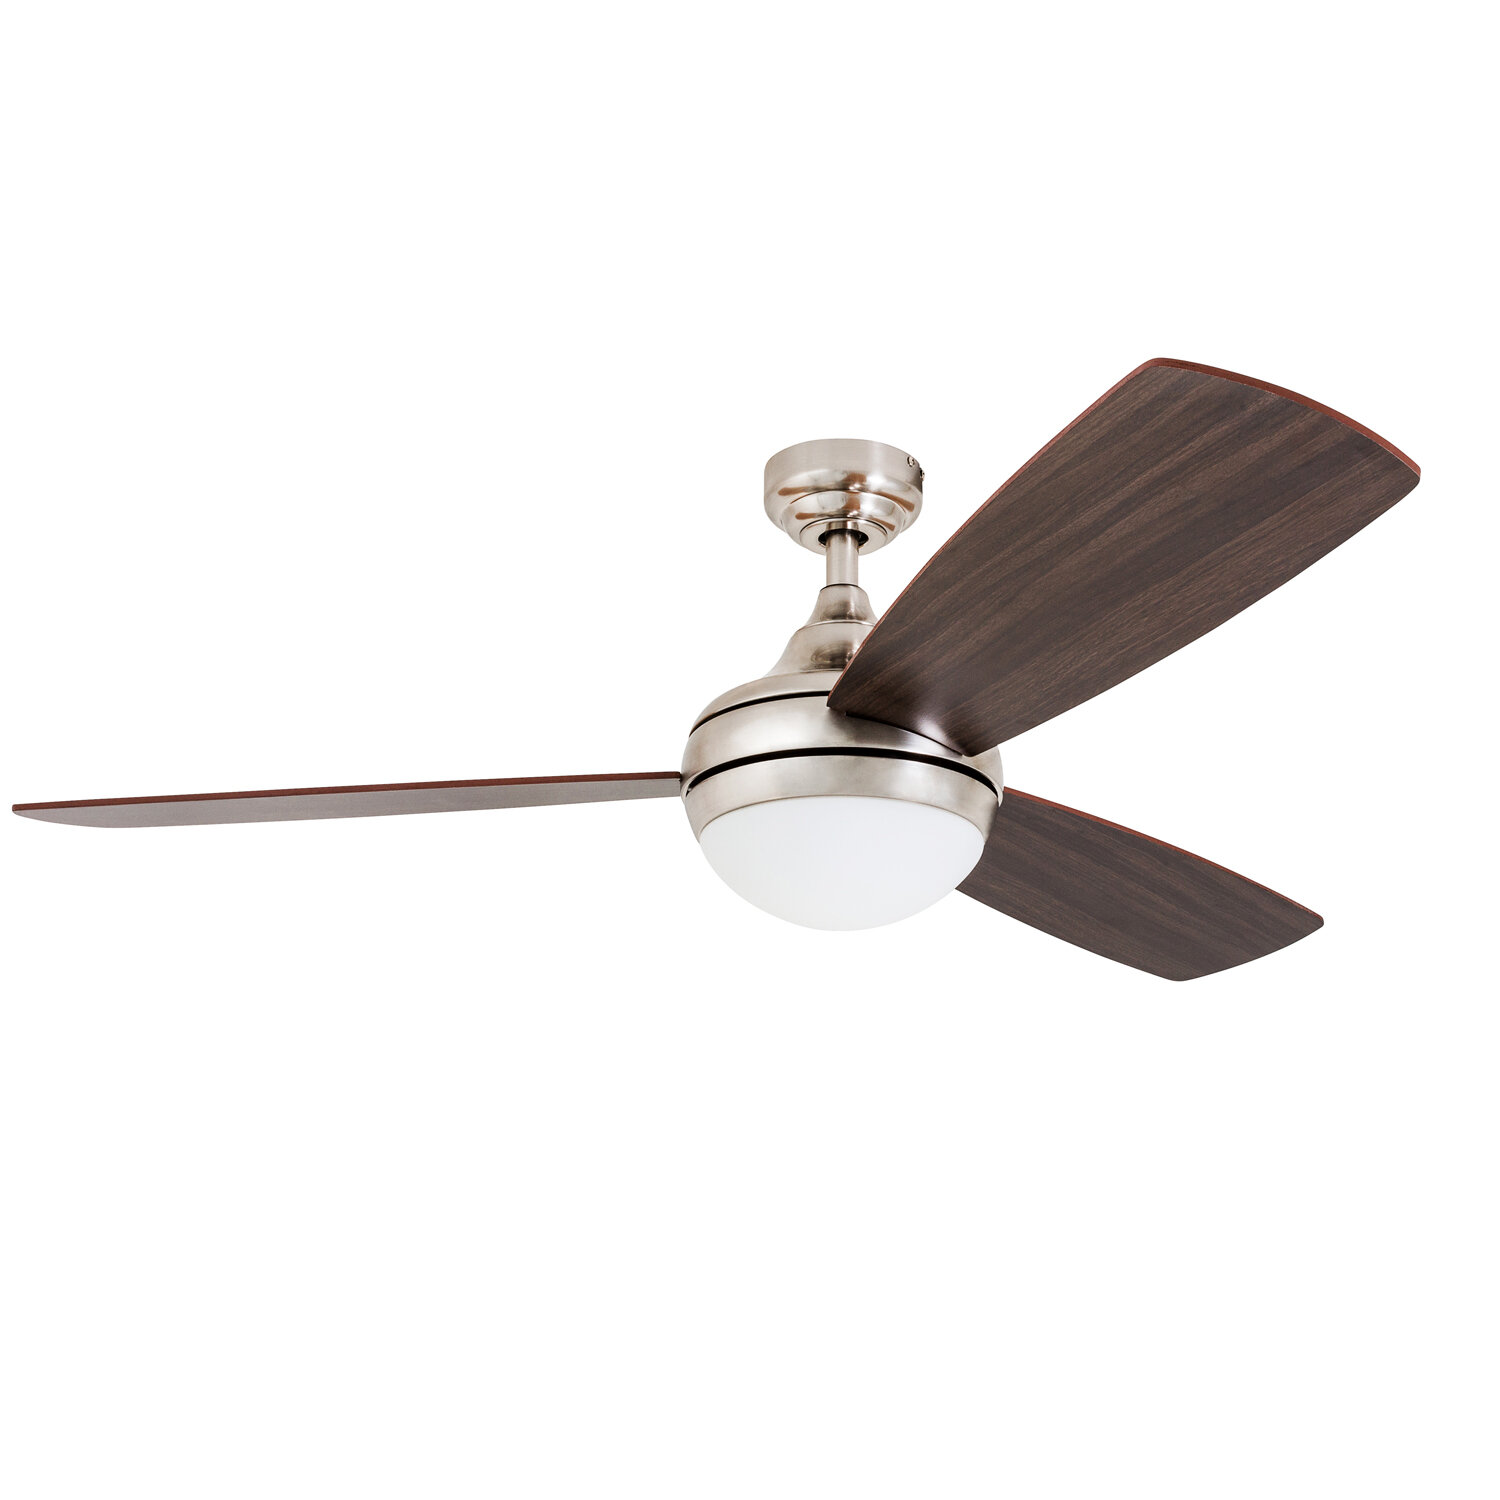 "wrought studio 52"" alexa 3 blade led ceiling fan with remote"